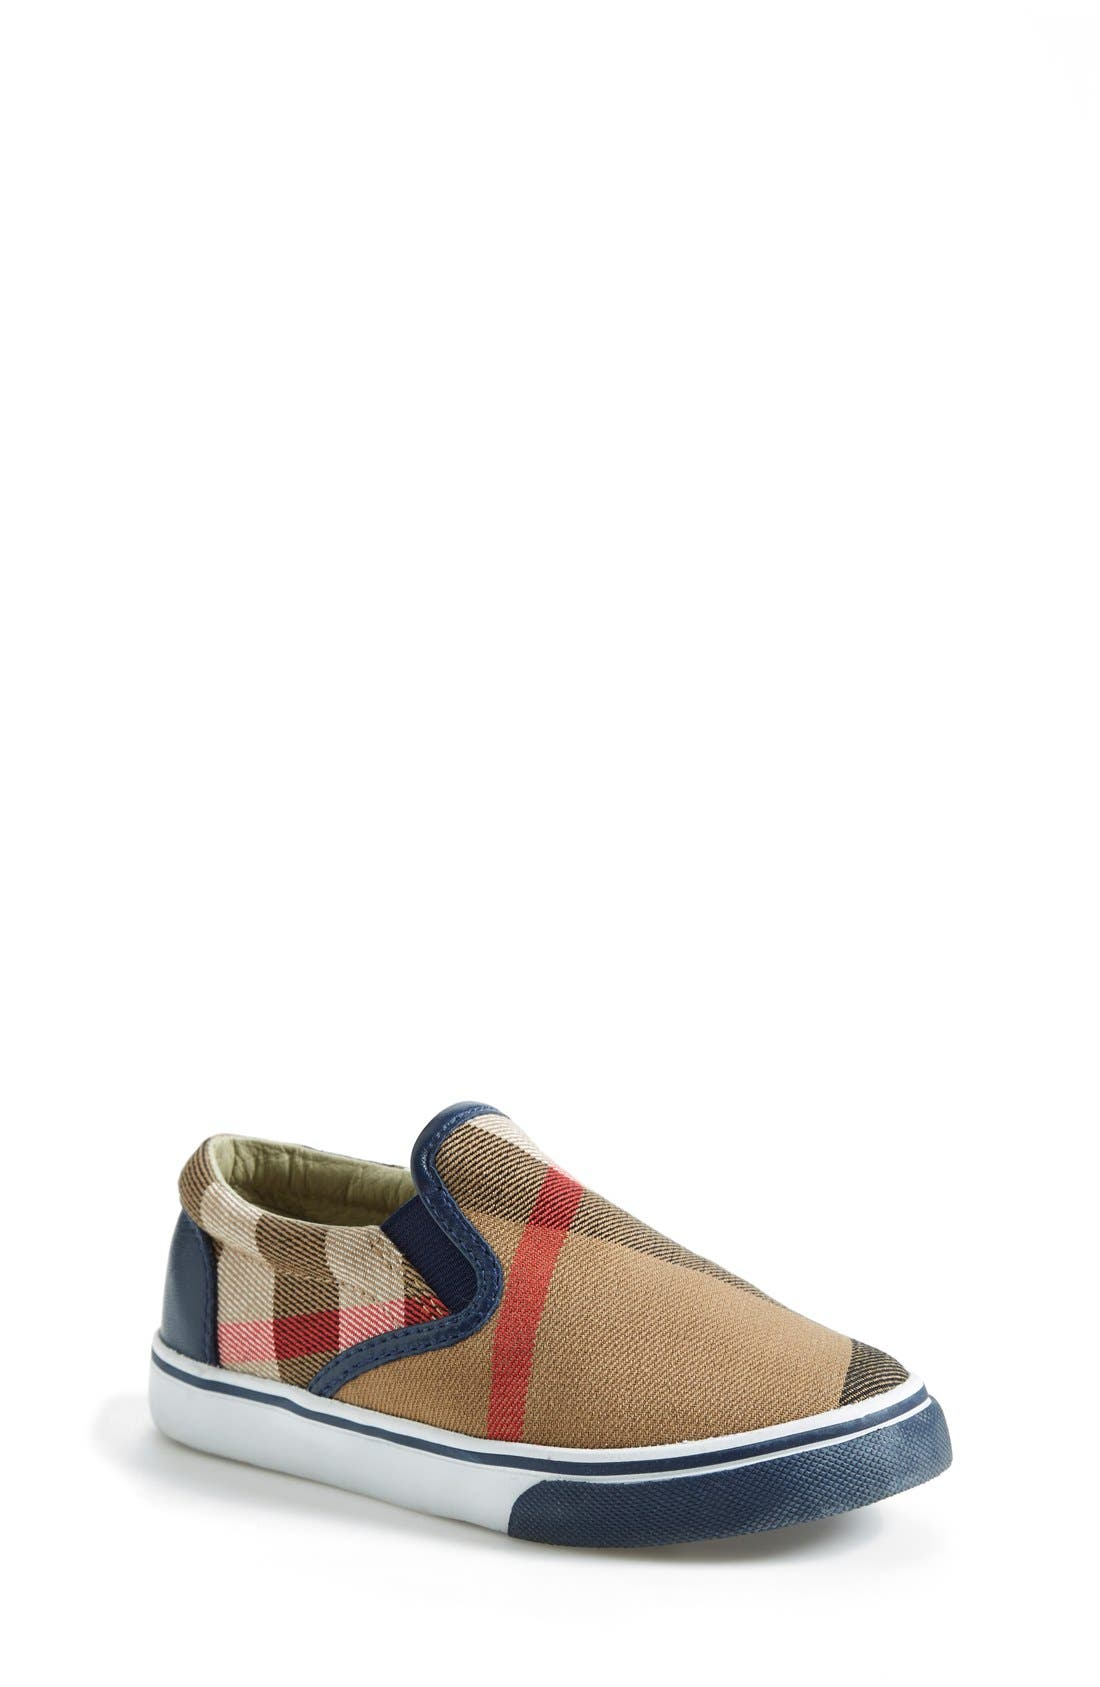 Burberry Linus Slip-On (Walker, Toddler & Little Kid)